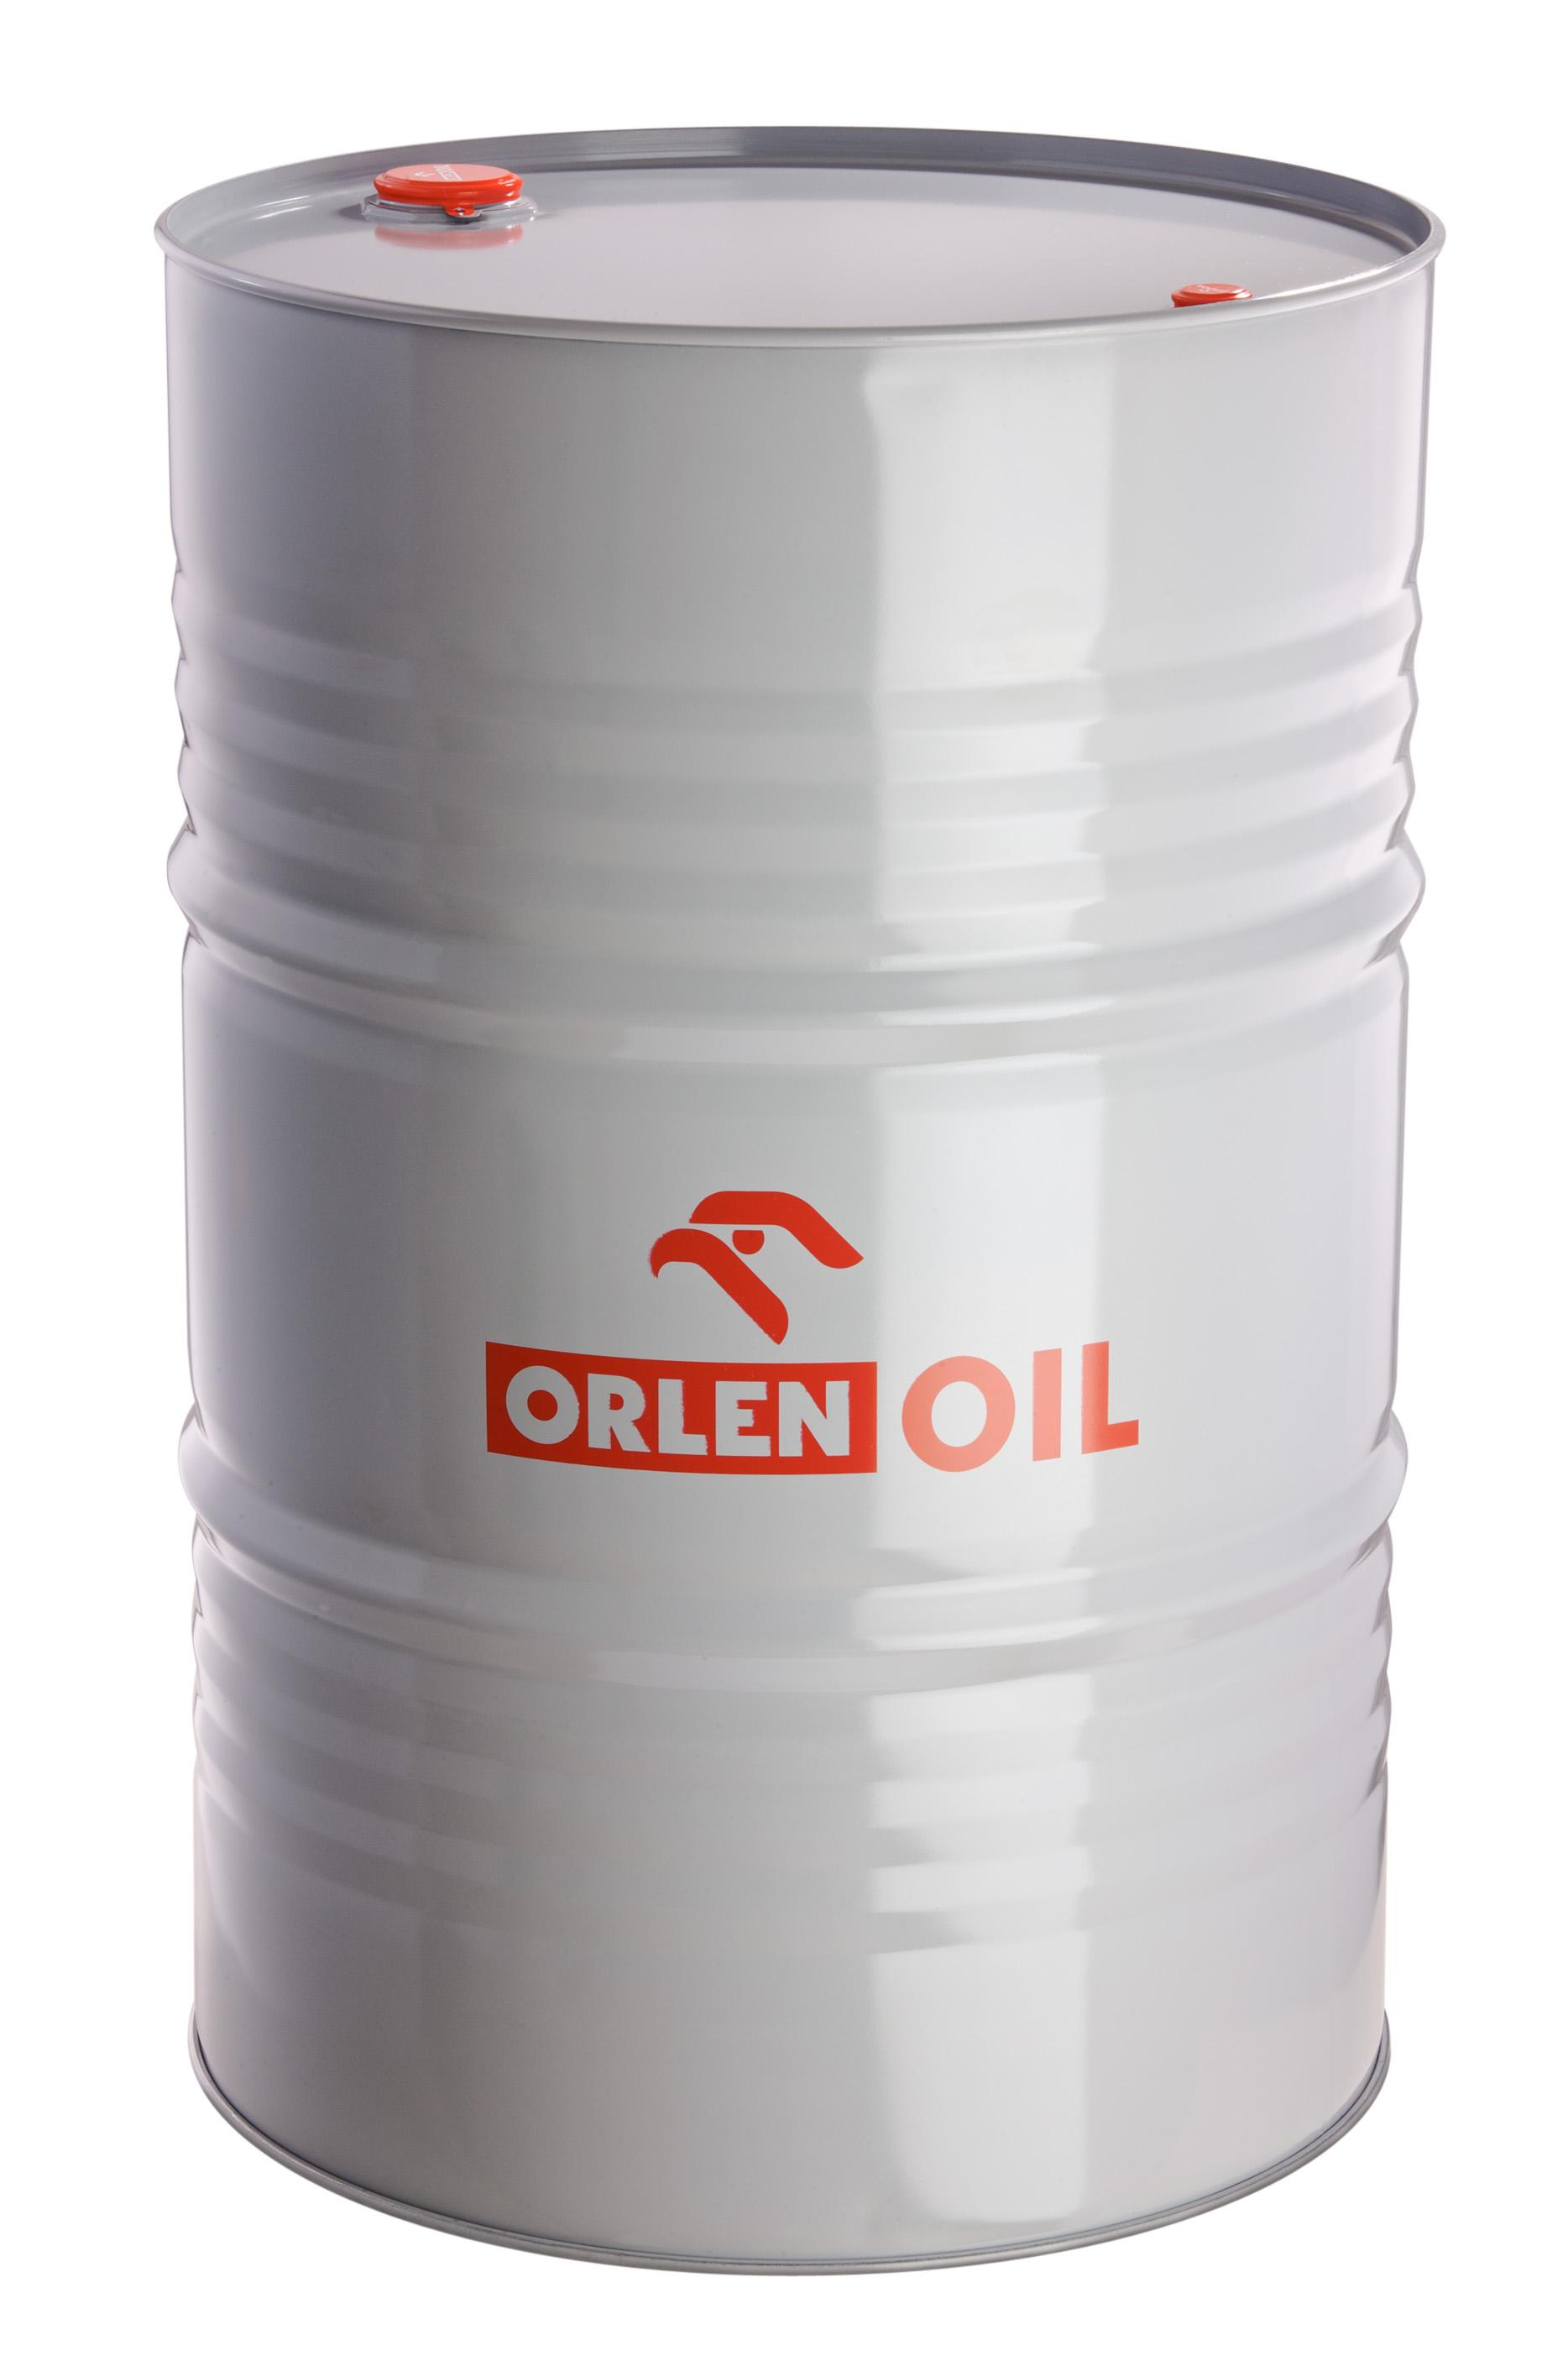 ORLEN OIL LR-DO LIN STALOWYCH   DRUMS 180KG *